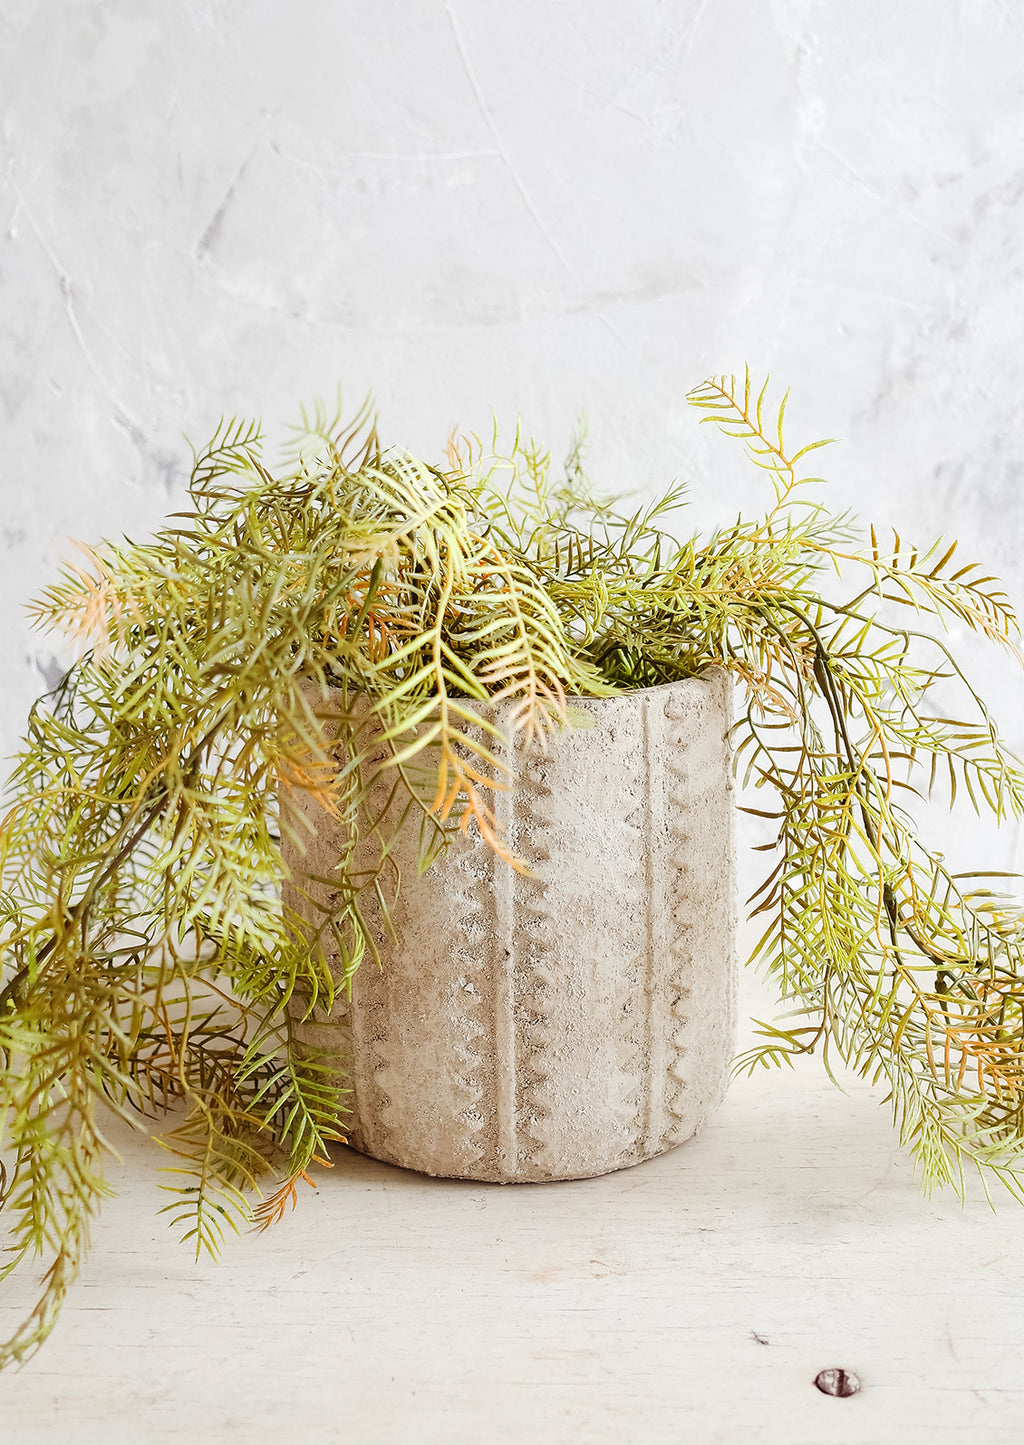 2: Distressed planter in concrete-like texture with stripe and zigzag detailing with trailing plant